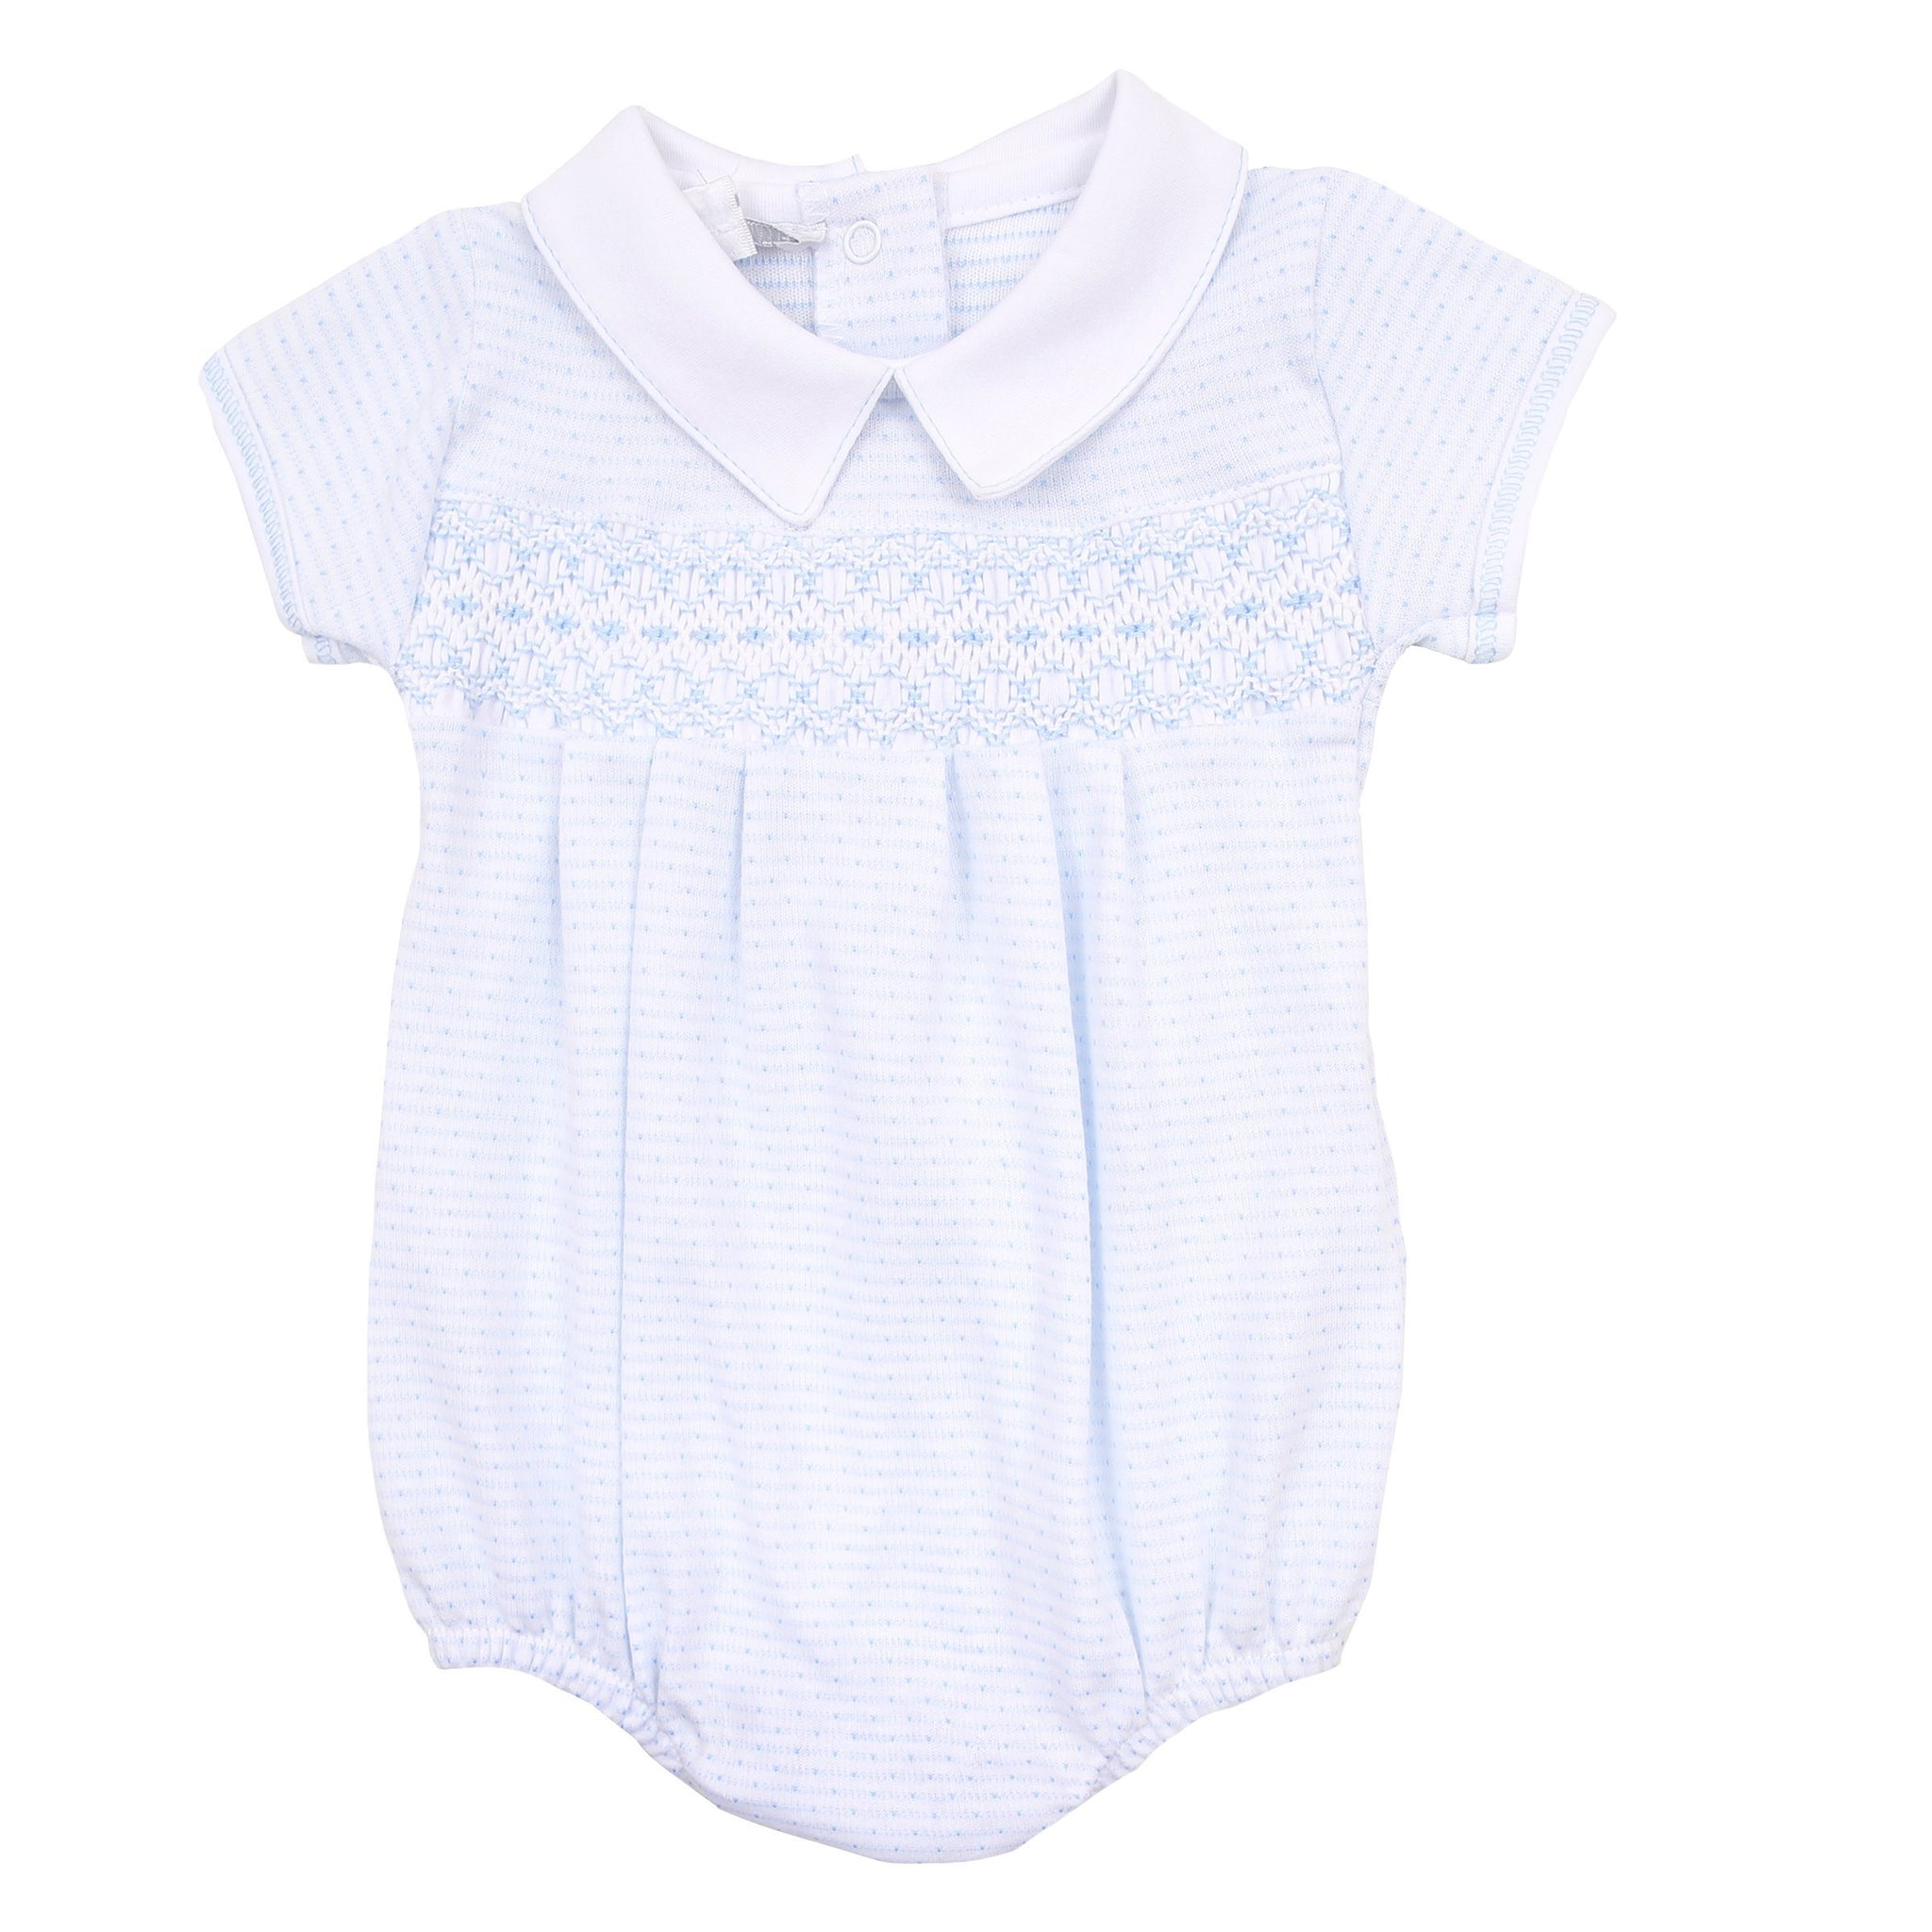 Jillian and Jacob's Classics Blue Smocked Bubble